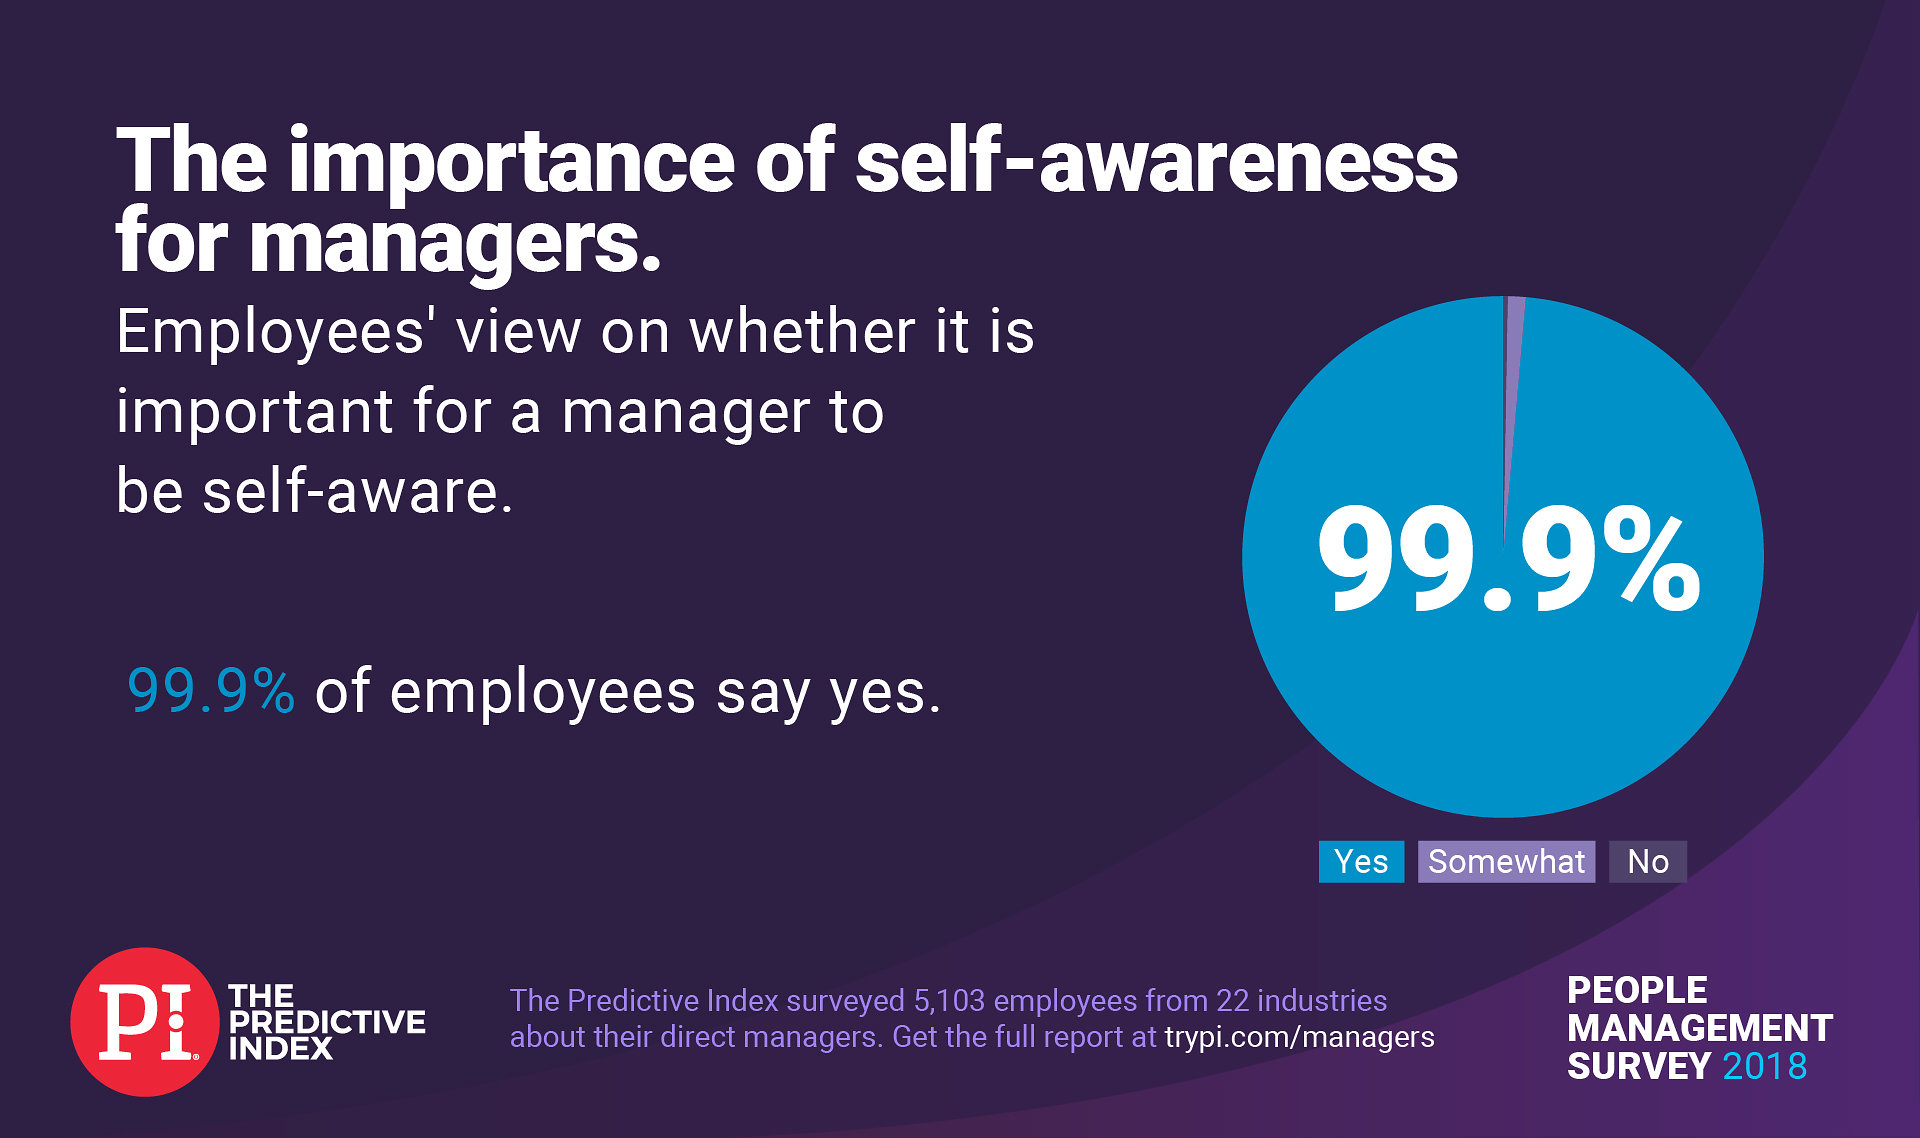 mindfulness in the workplace and self-awareness